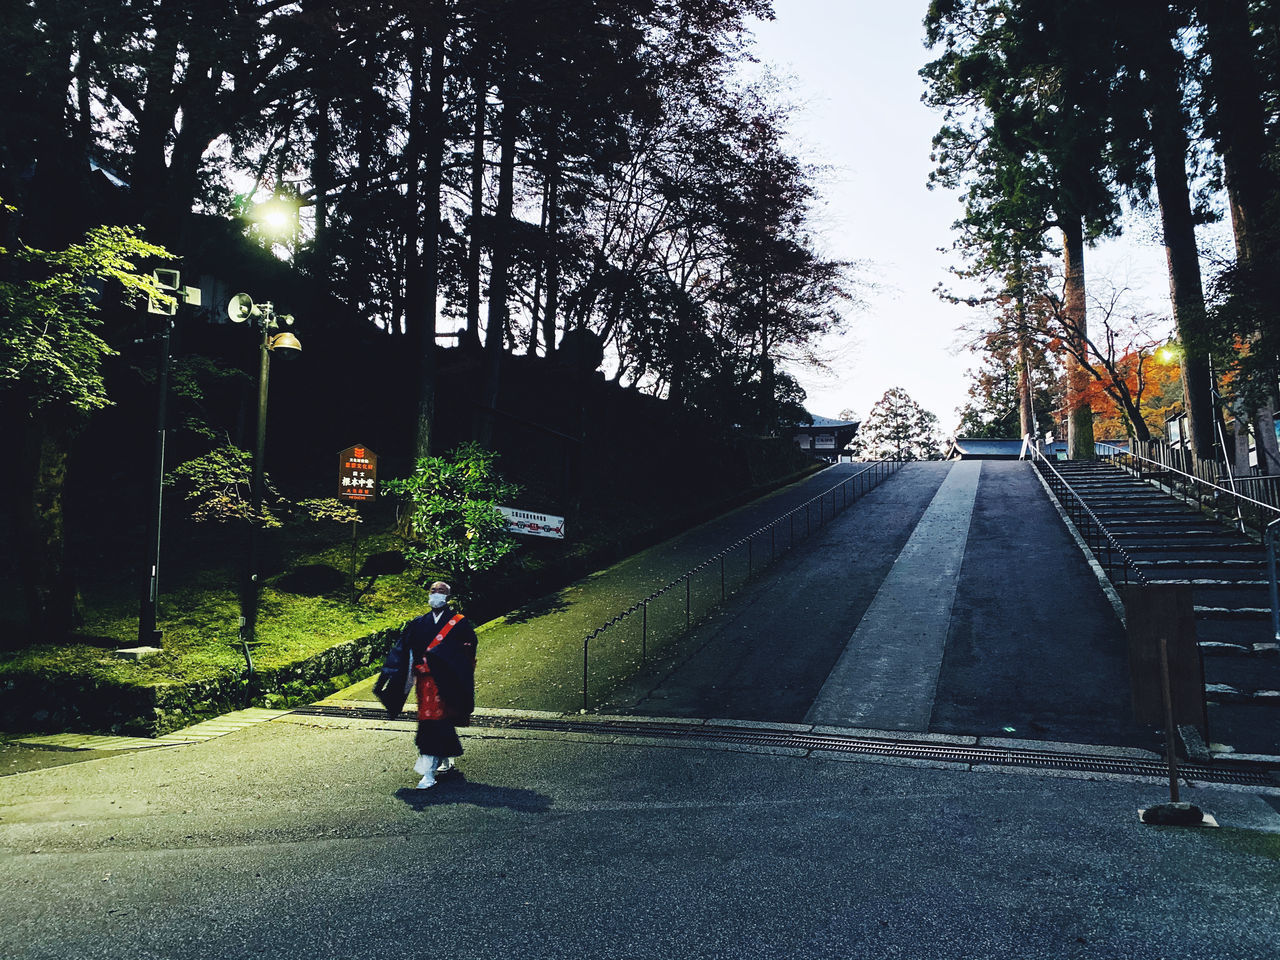 REAR VIEW OF MAN WALKING ON ROAD BY TREES